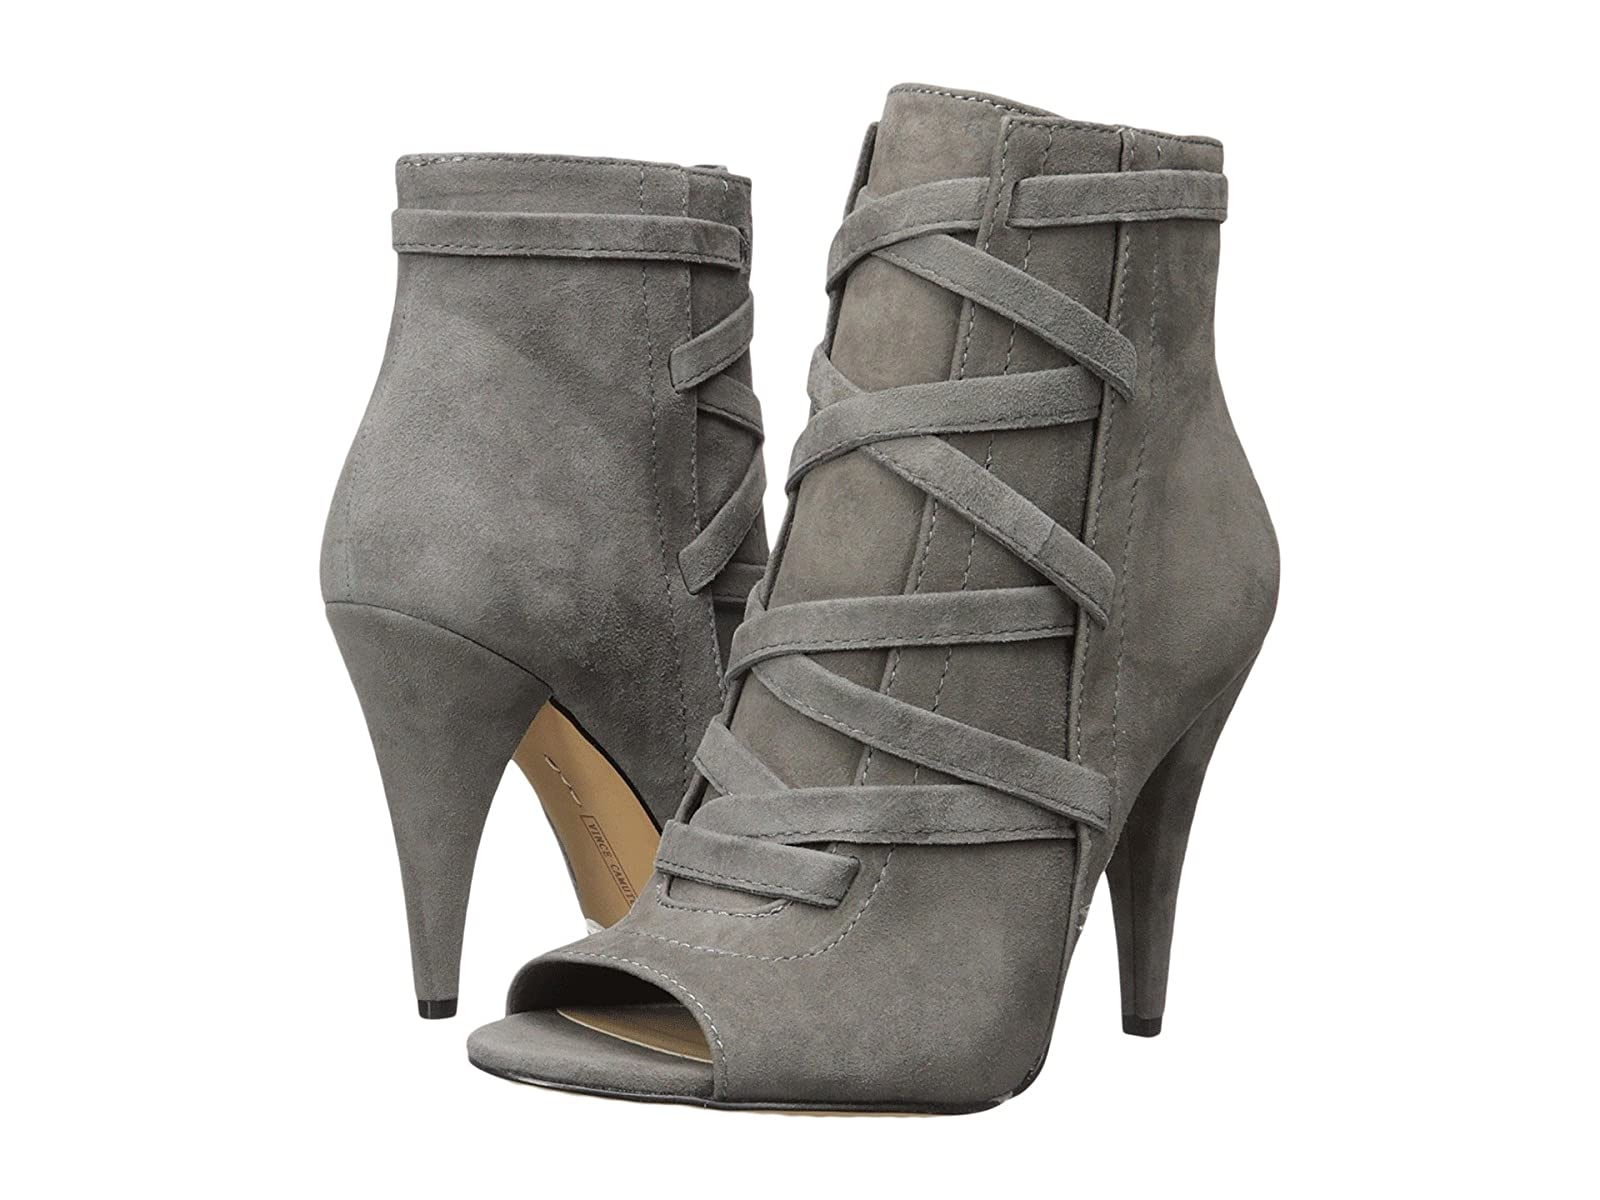 Vince Camuto ArandaCheap and distinctive eye-catching shoes